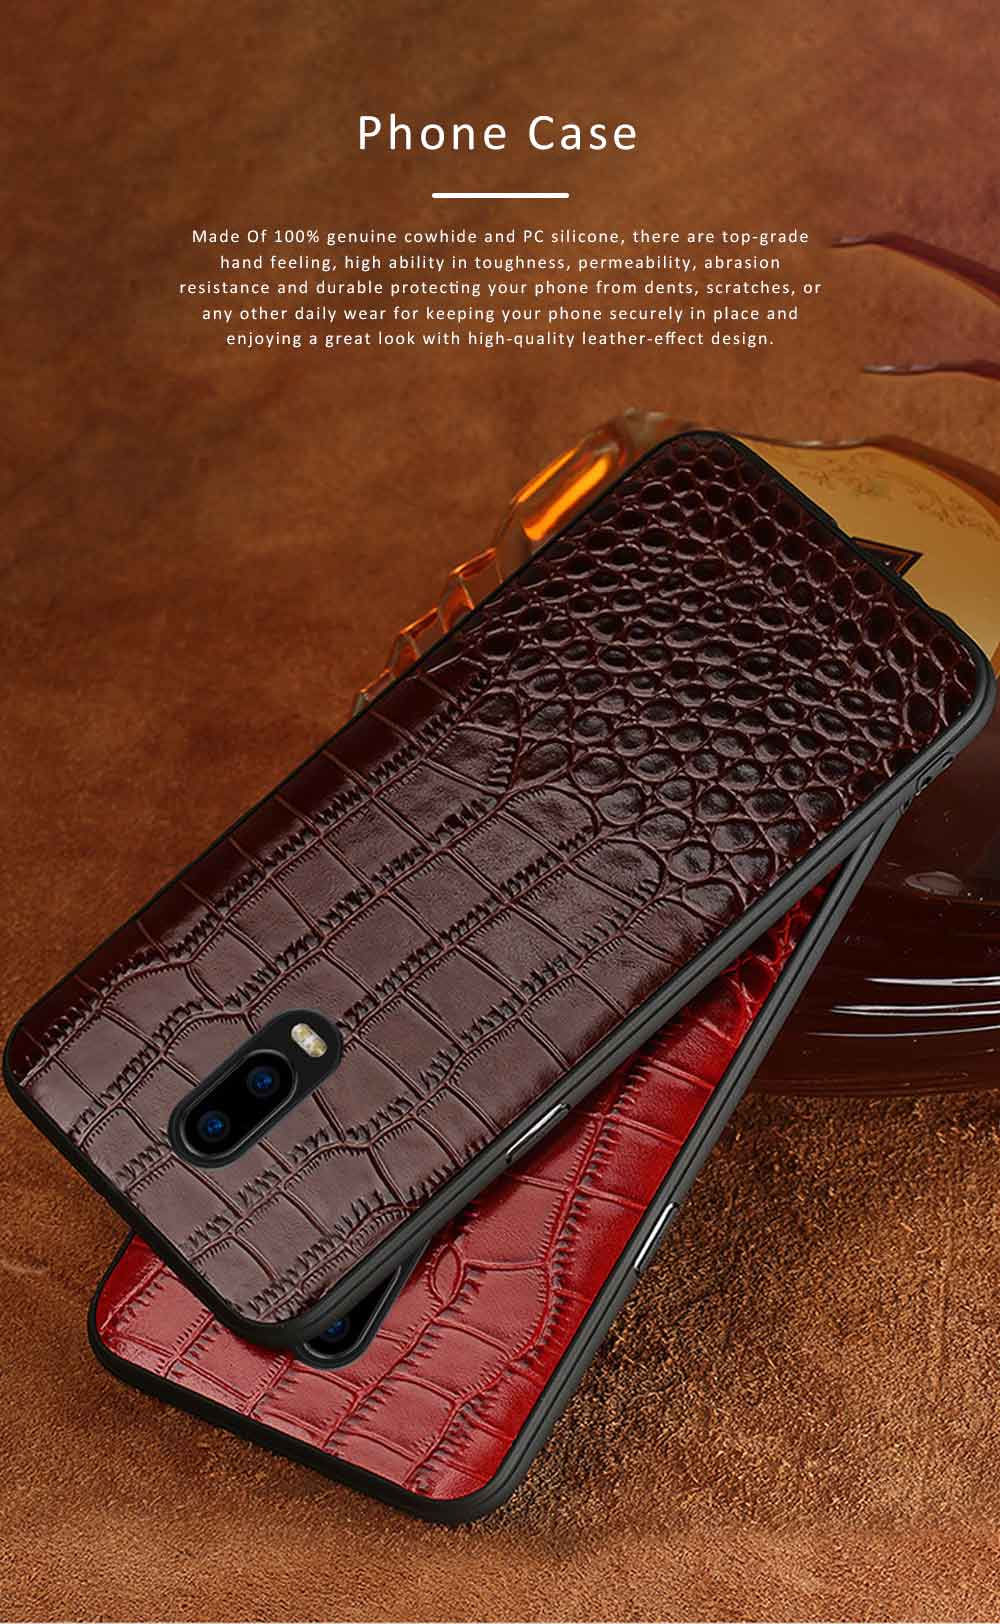 Phone Case Retro Genuine Leather 3D Alligator Skin Texture Case Fashion Phone Accessories for OPPOR Series 0